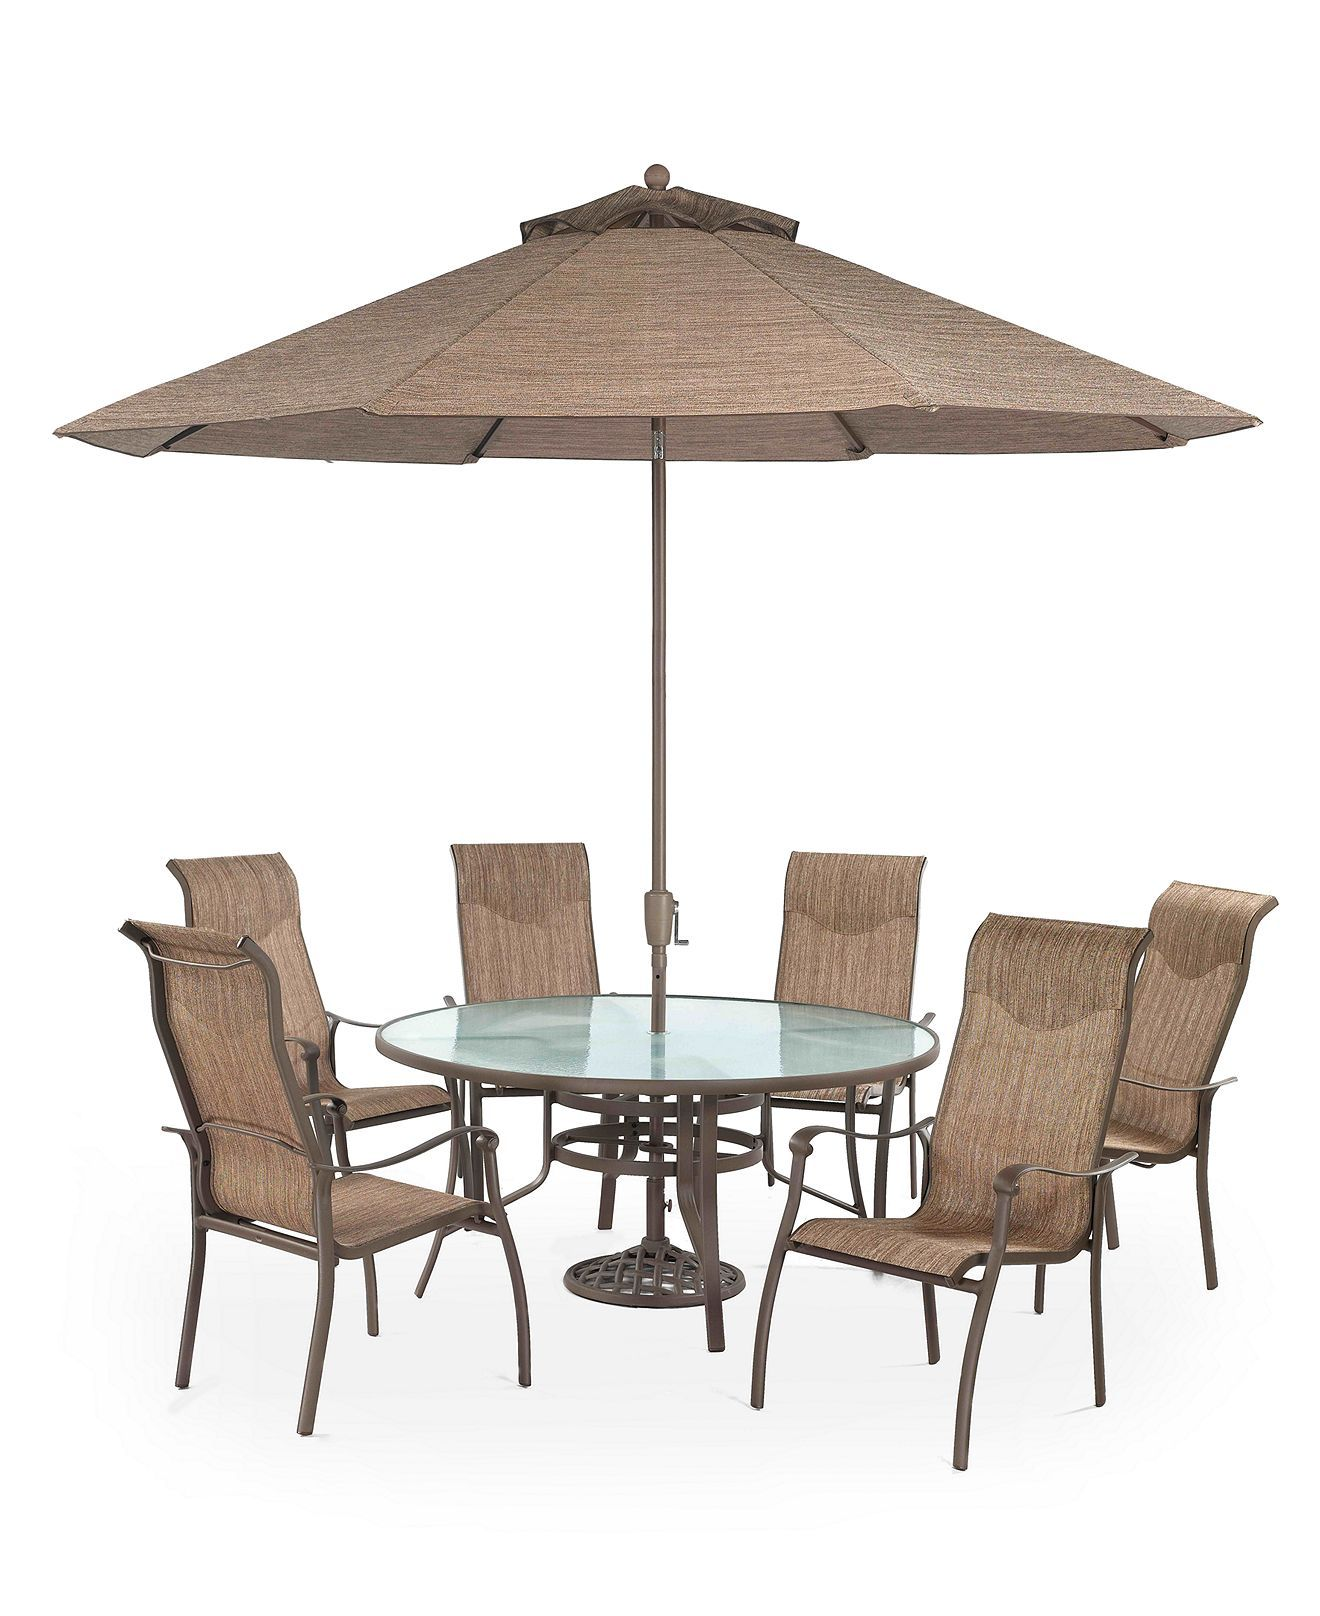 piece of macys color furniture dining patio luxury teak big bright awesome outdoor lights set cupboard haywood